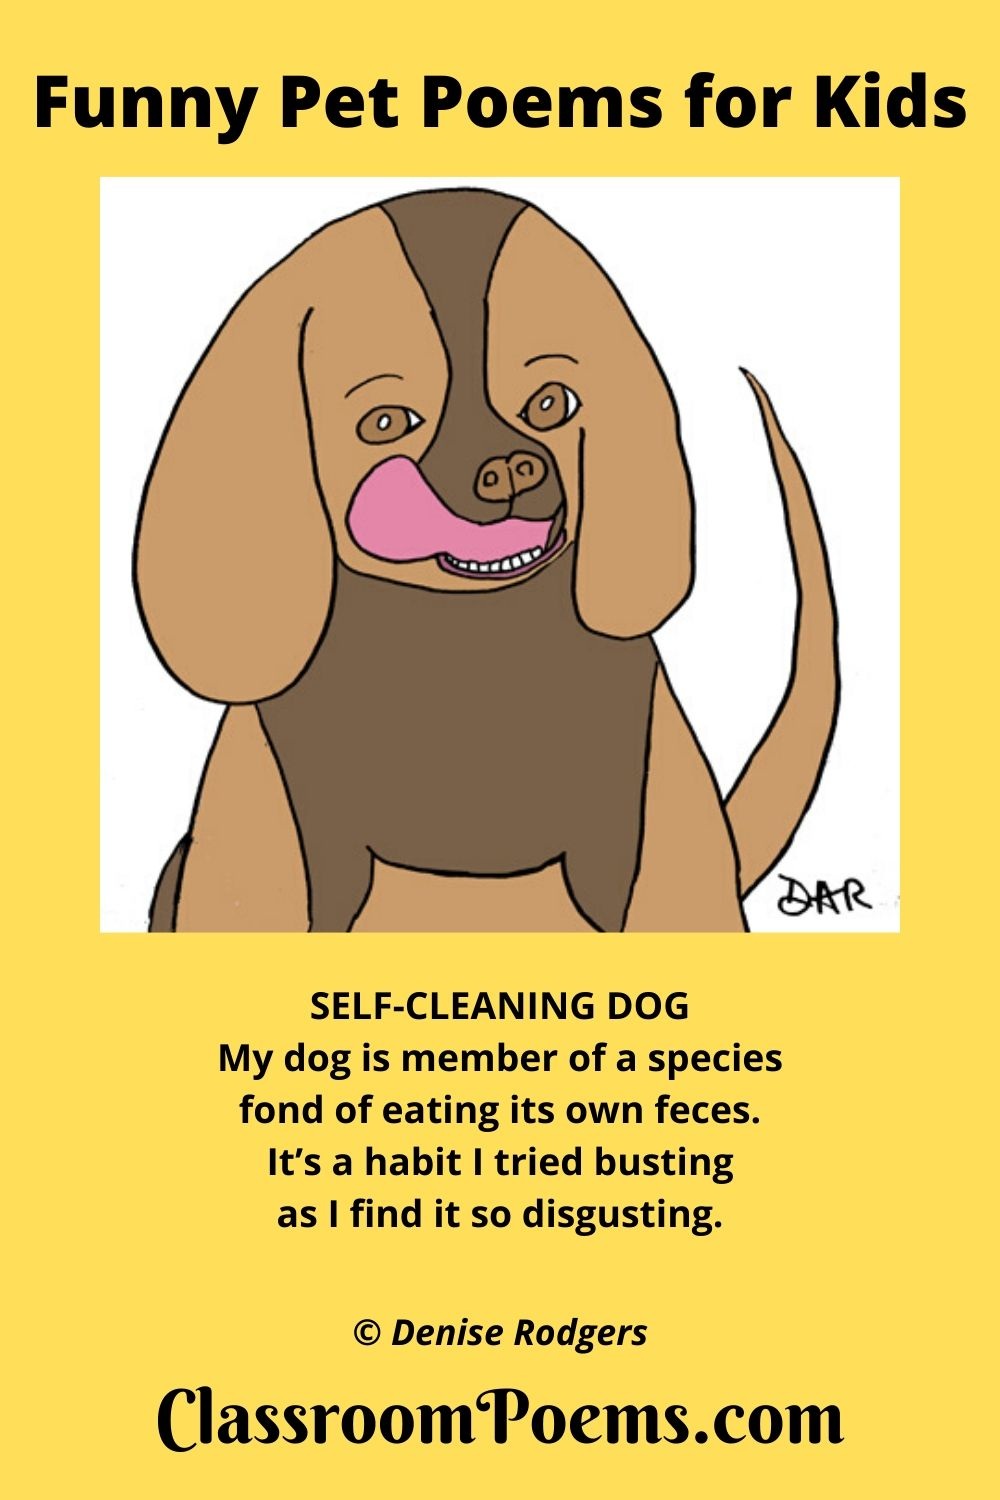 funny dog poem, funny pet poem, Self-Cleaning Dog poem by Denise Rodgers on ClassroomPoems.com.